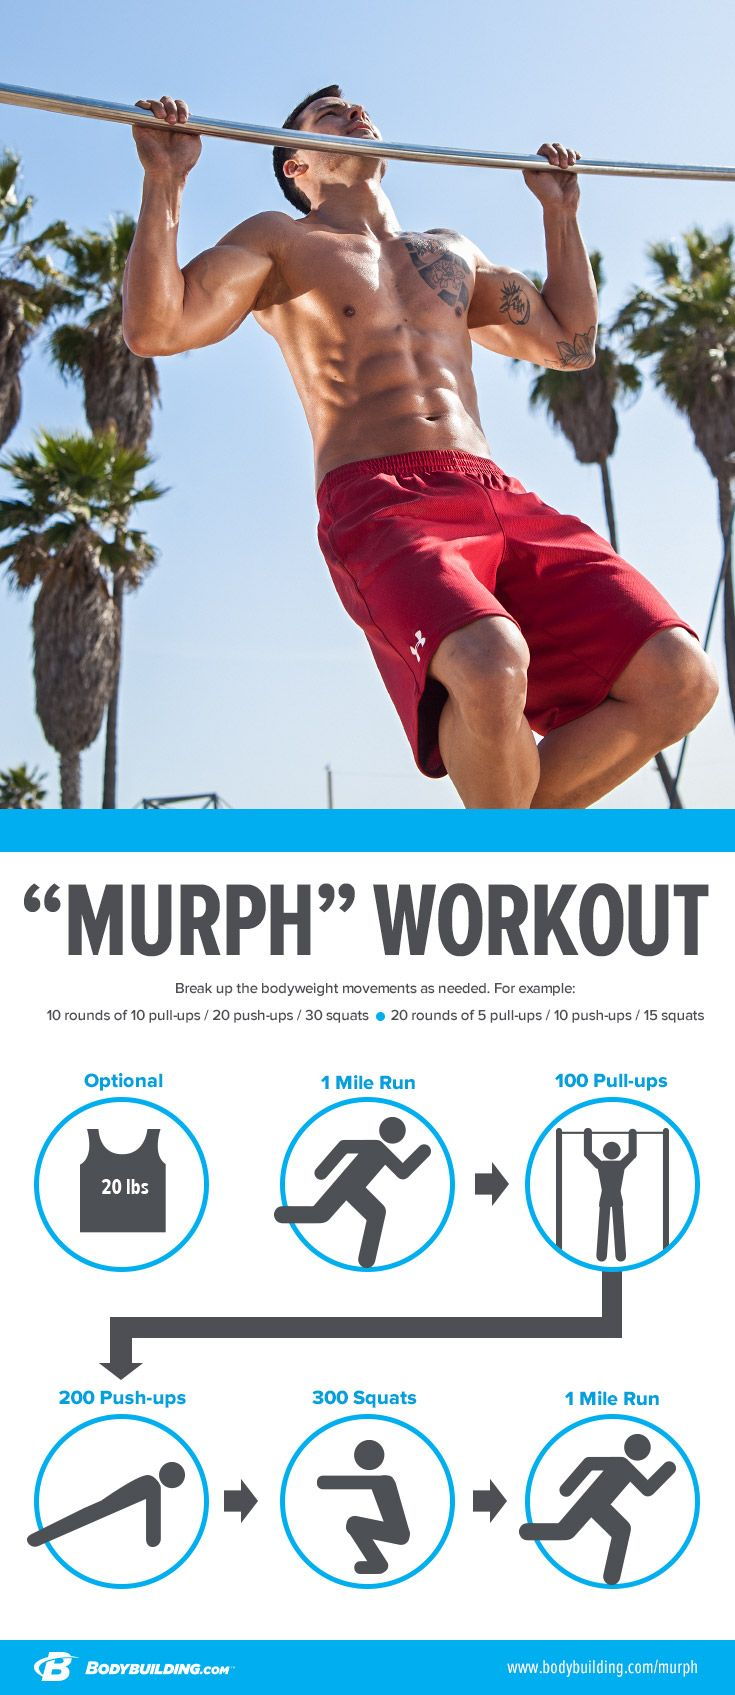 Commemorative workouts have become a ritual for active-duty service members and those who want to honor them. Don't just shrug it off as another fad. Battle through Murph for the right reason!